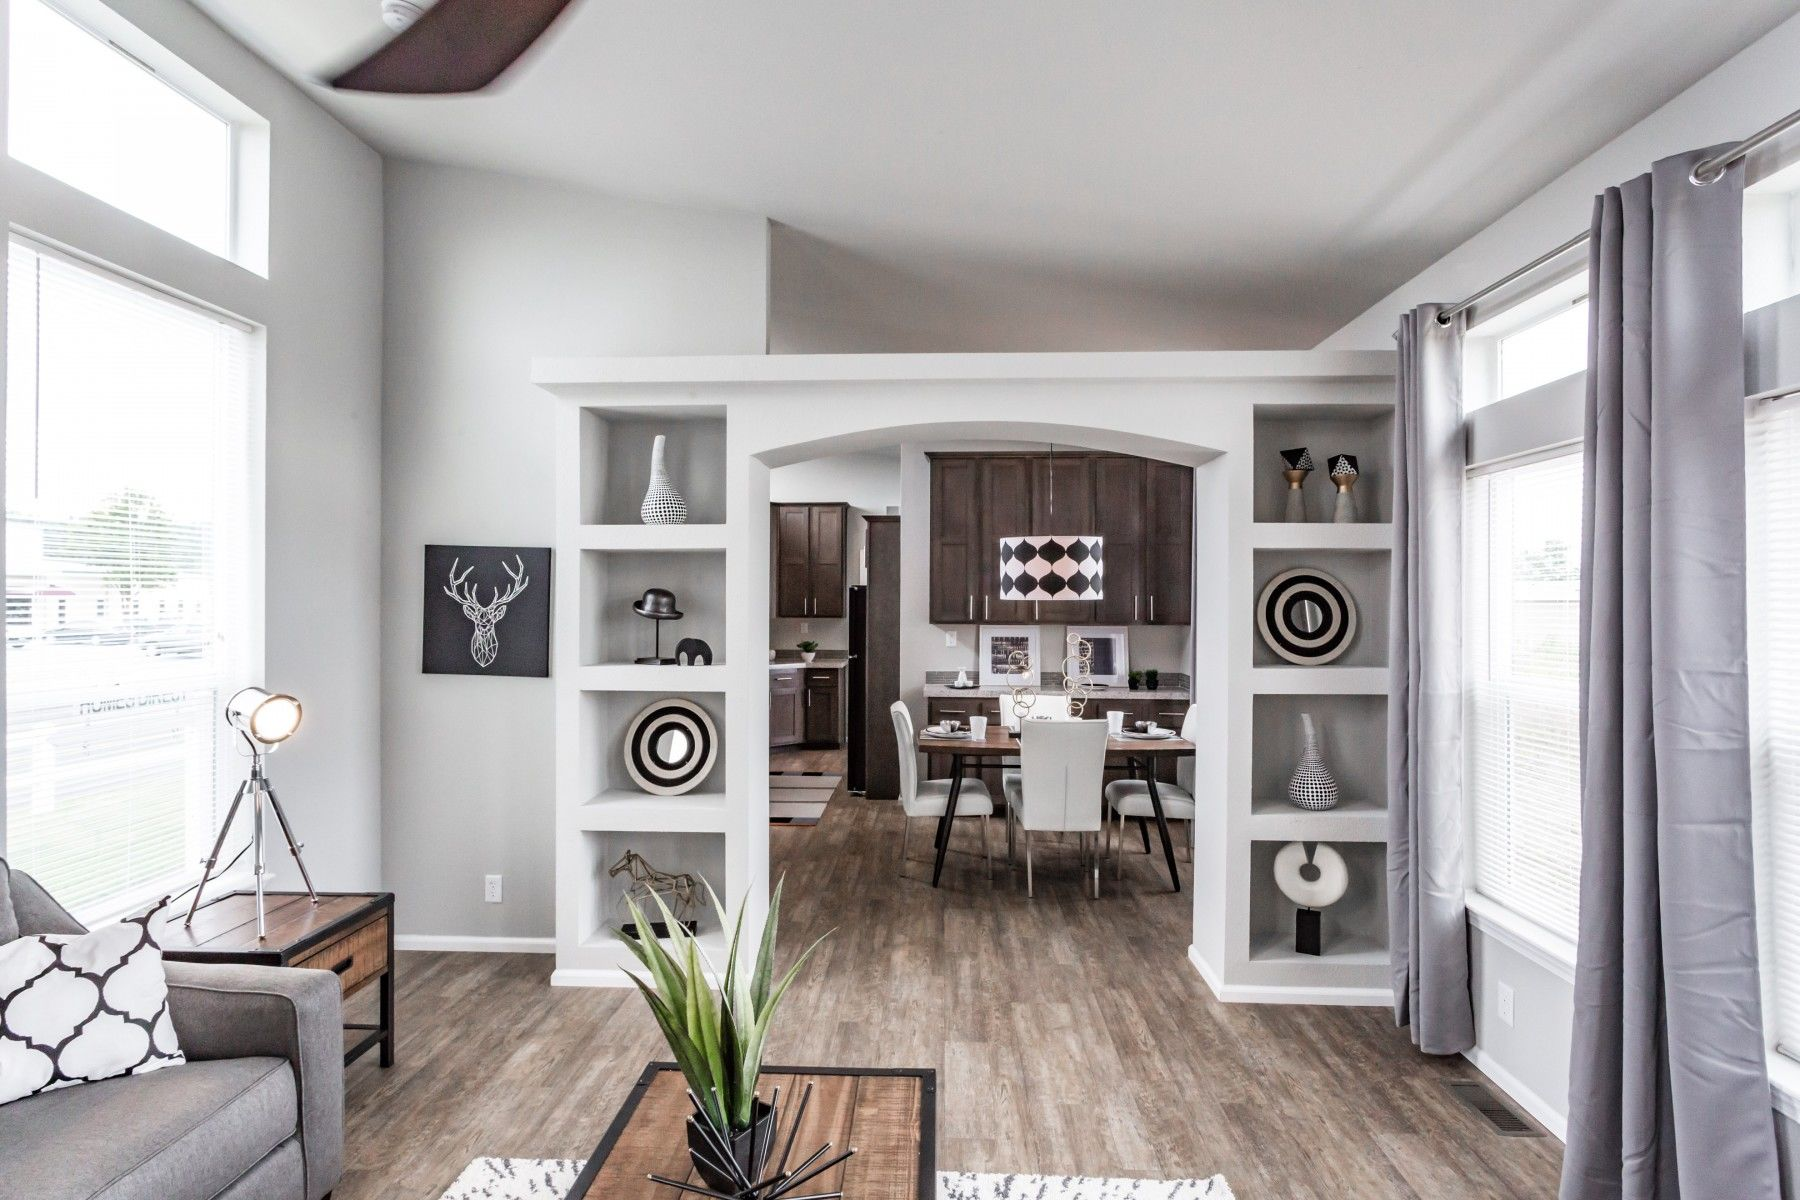 The Loft Homes Direct